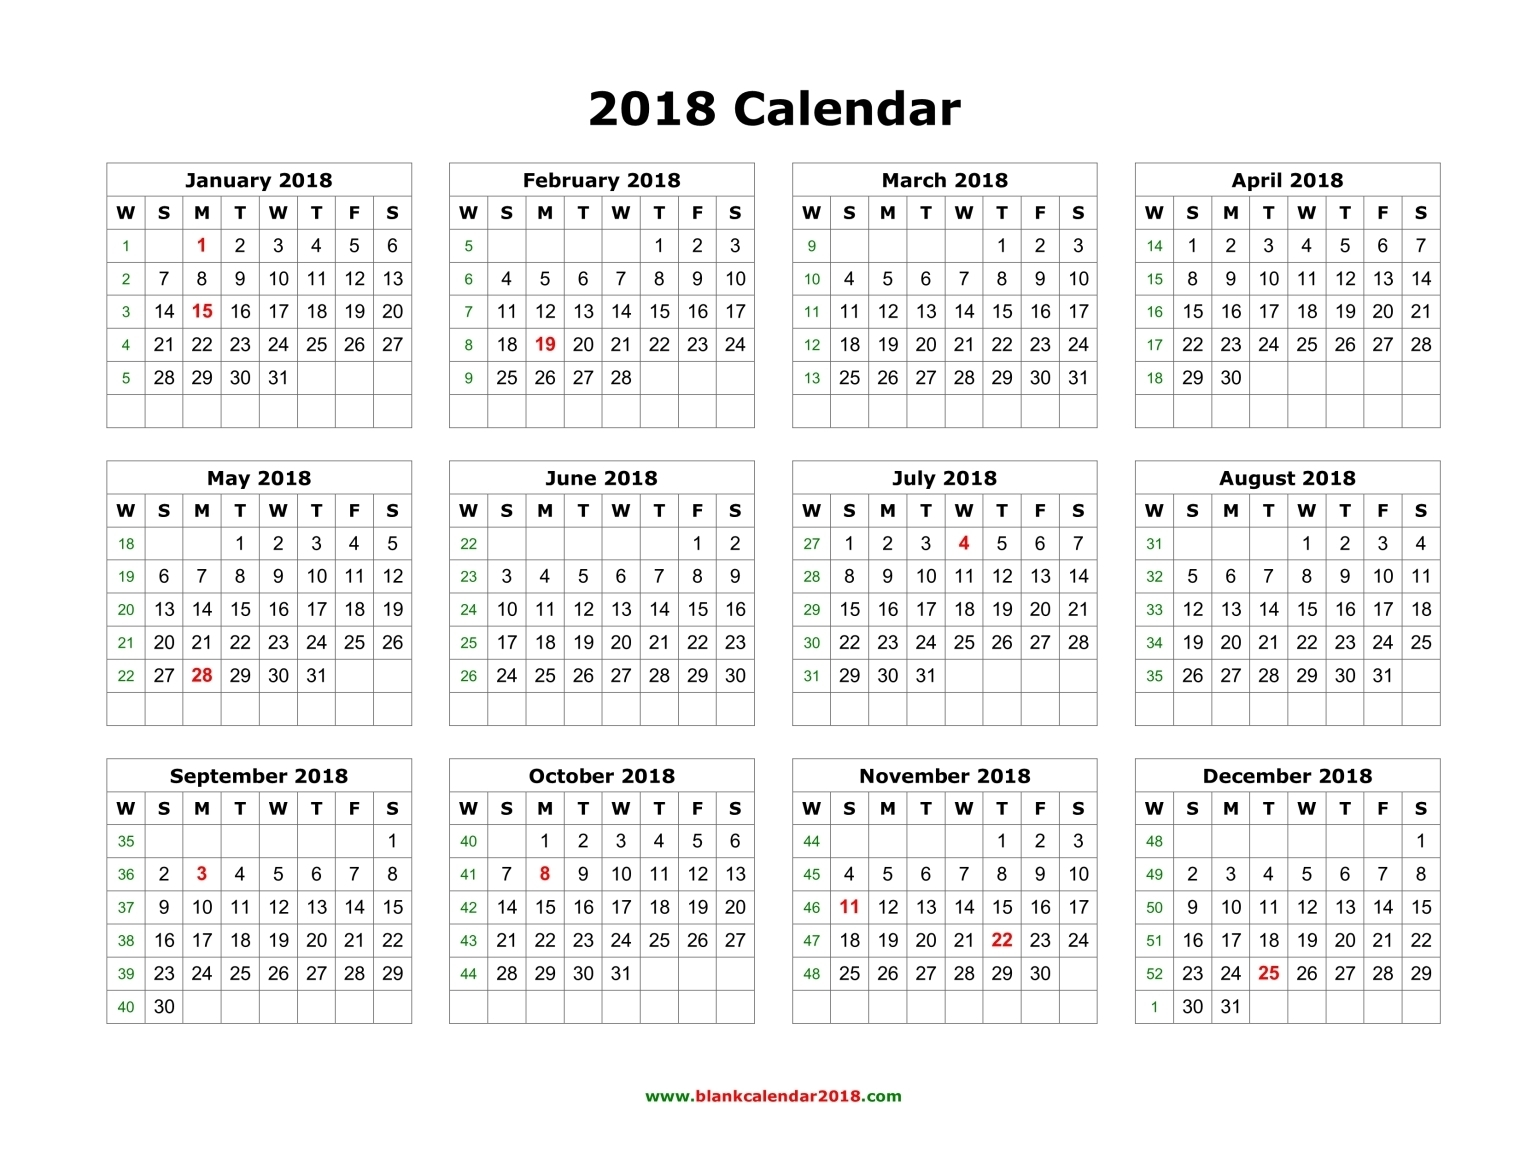 printable 2018 calendar on one page